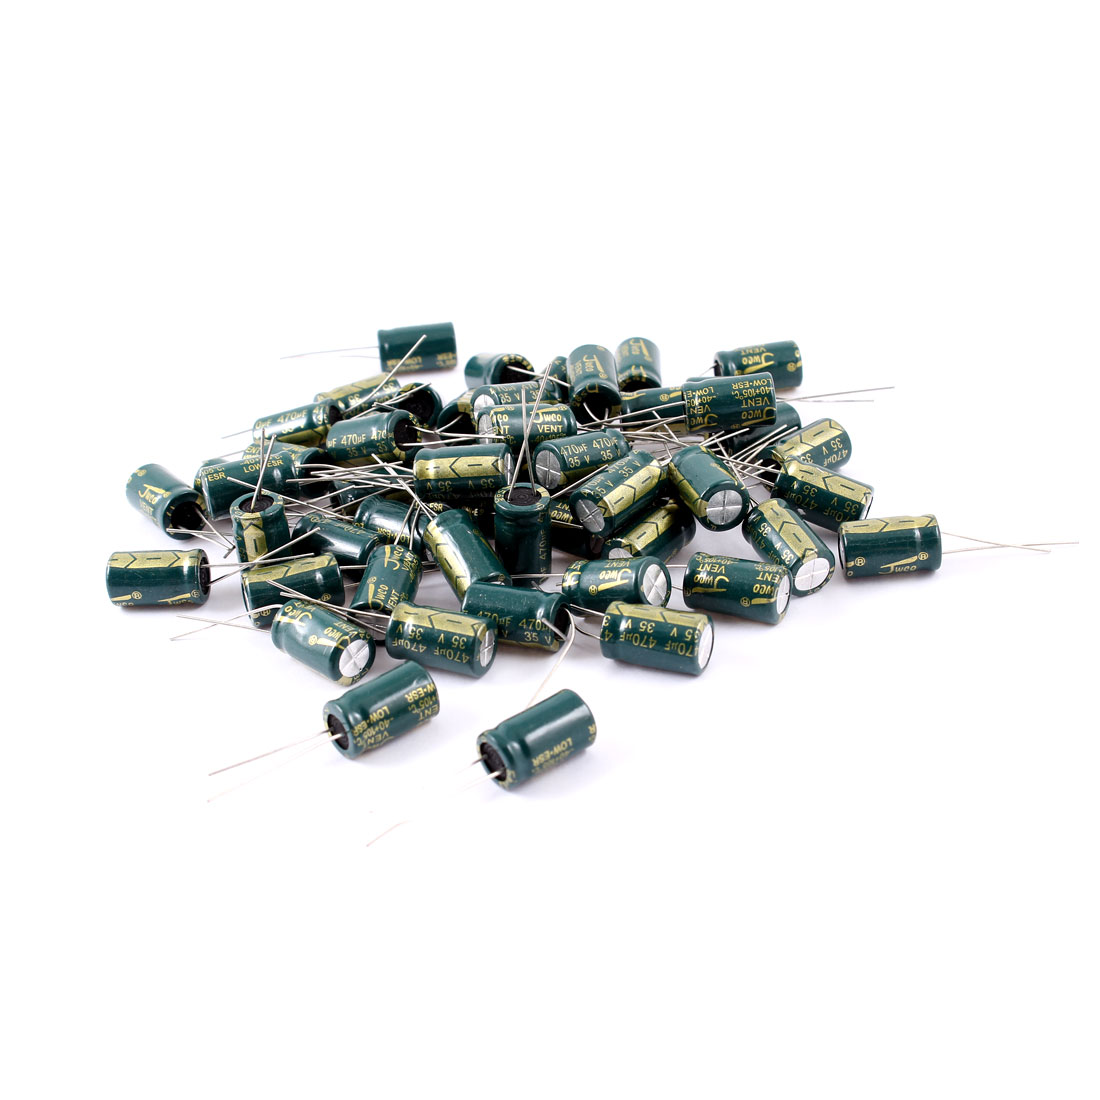 50 Pcs 470uF 35V Radial Motherboard Electrolytic Capacitors 10mmx17mm